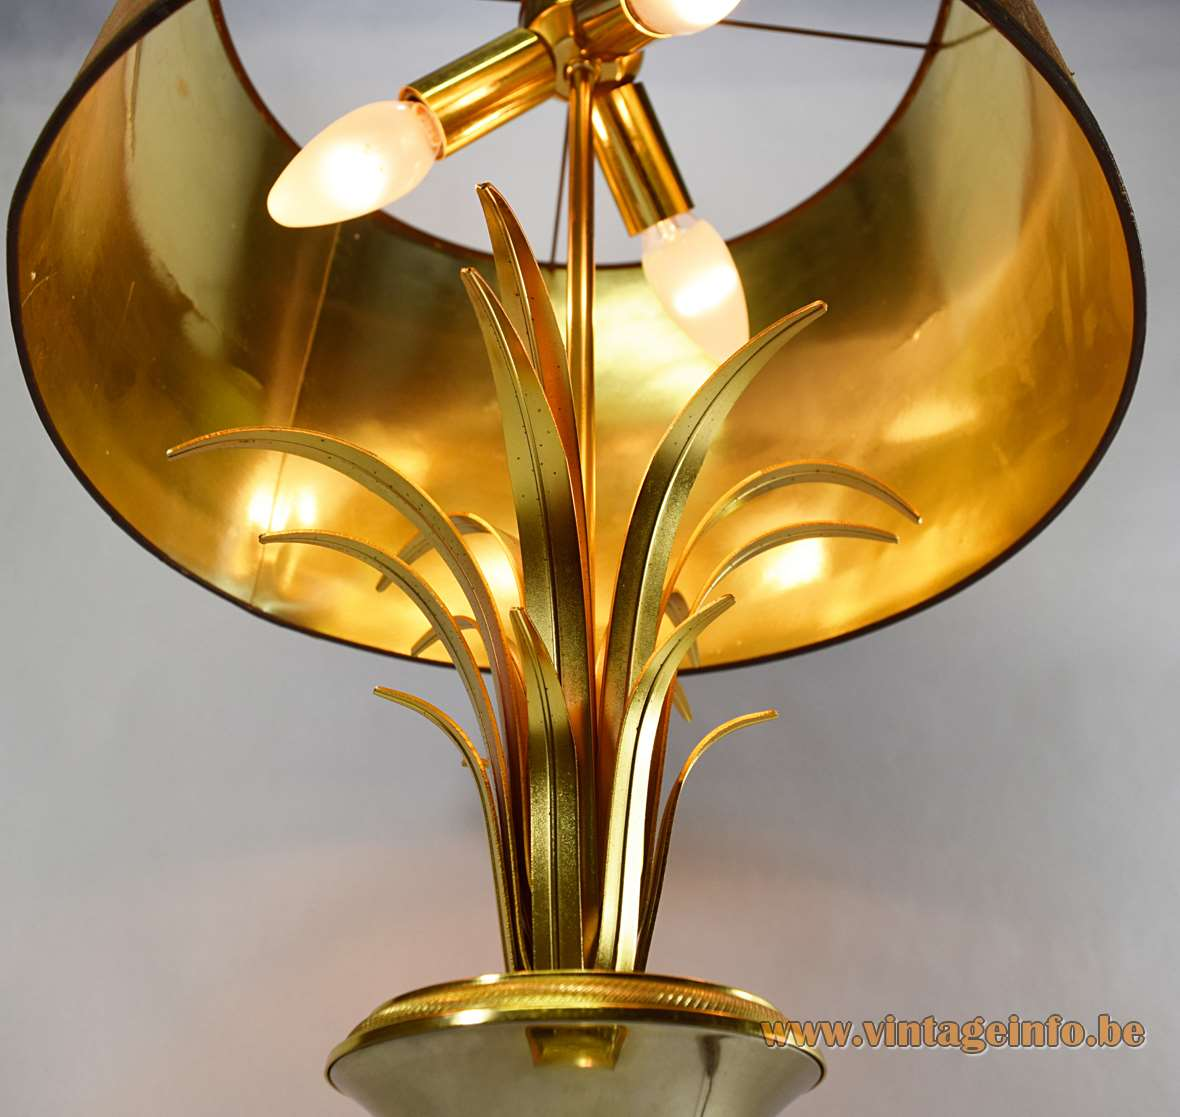 Boulanger reed table lamps square chrome base brass palm leaves & urn round fabric lampshade 1960s 1970s